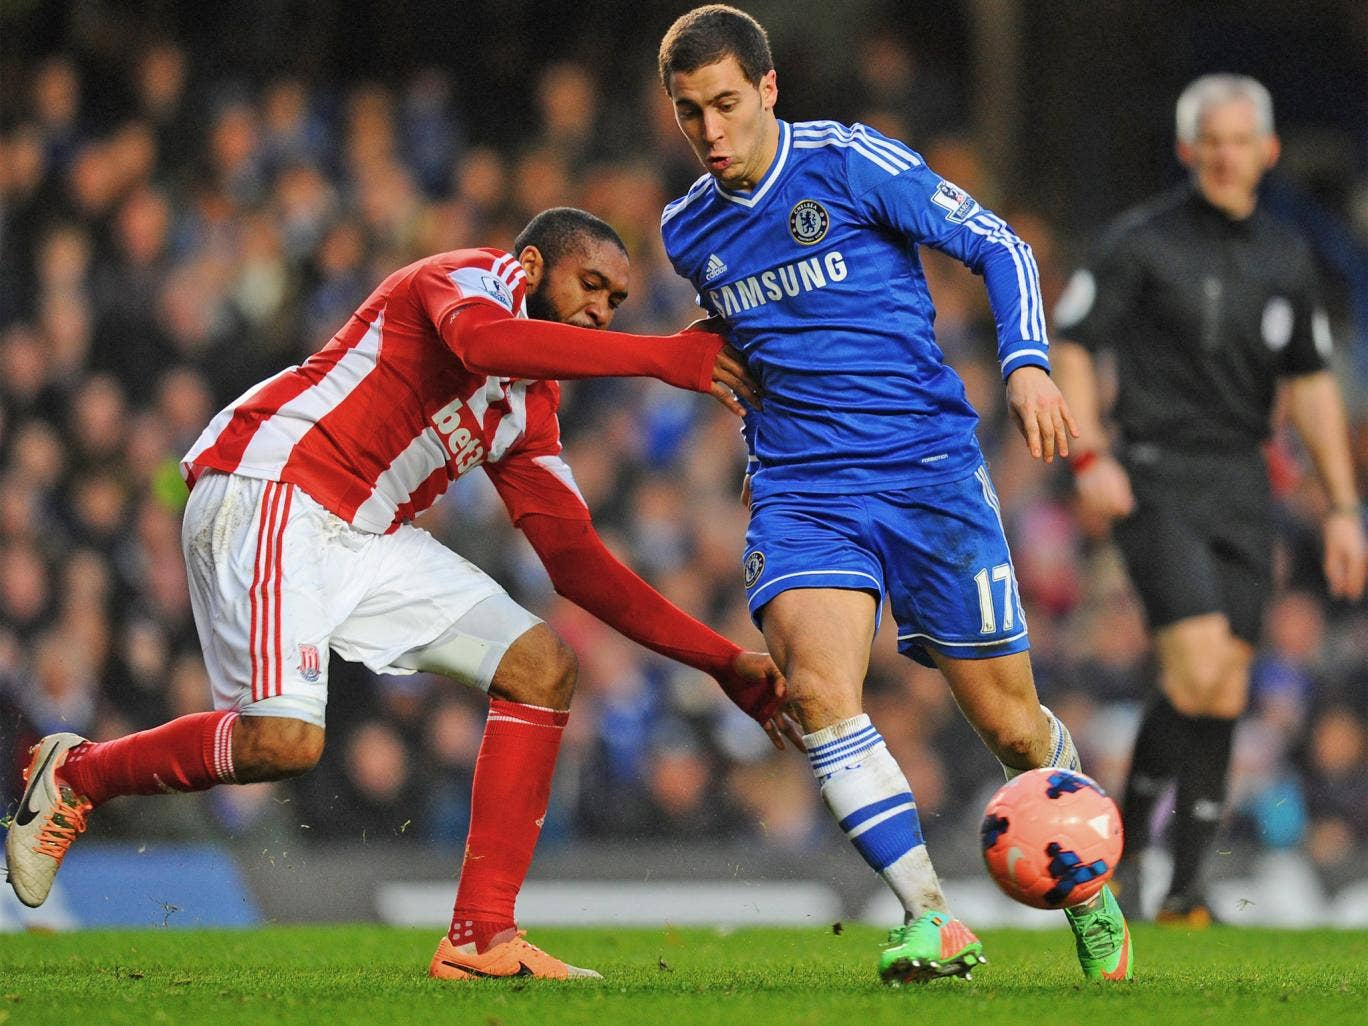 Chelsea's Eden Hazard in action during last weekend's FA Cup Fourth Round match against Stoke City